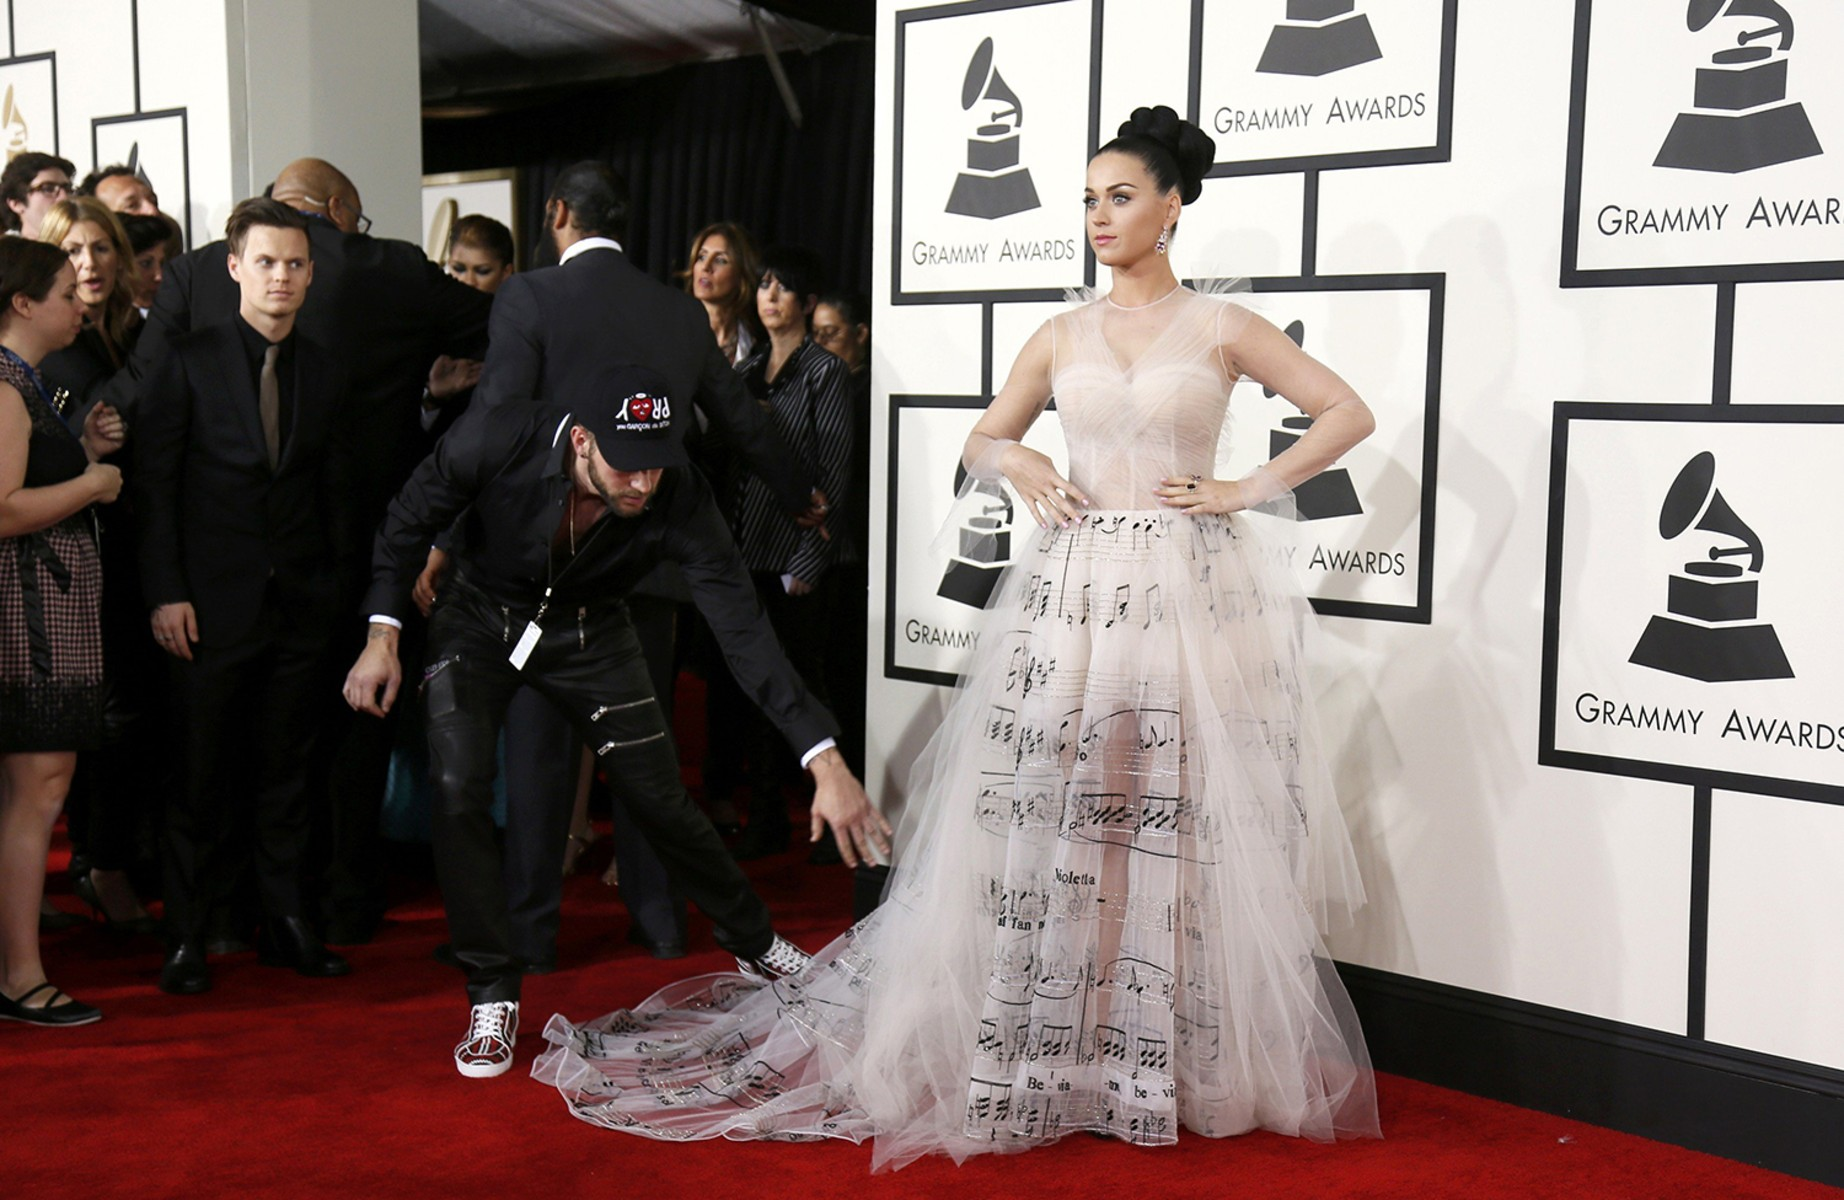 Grammy Award: 2014 Grammy Awards Red Carpet